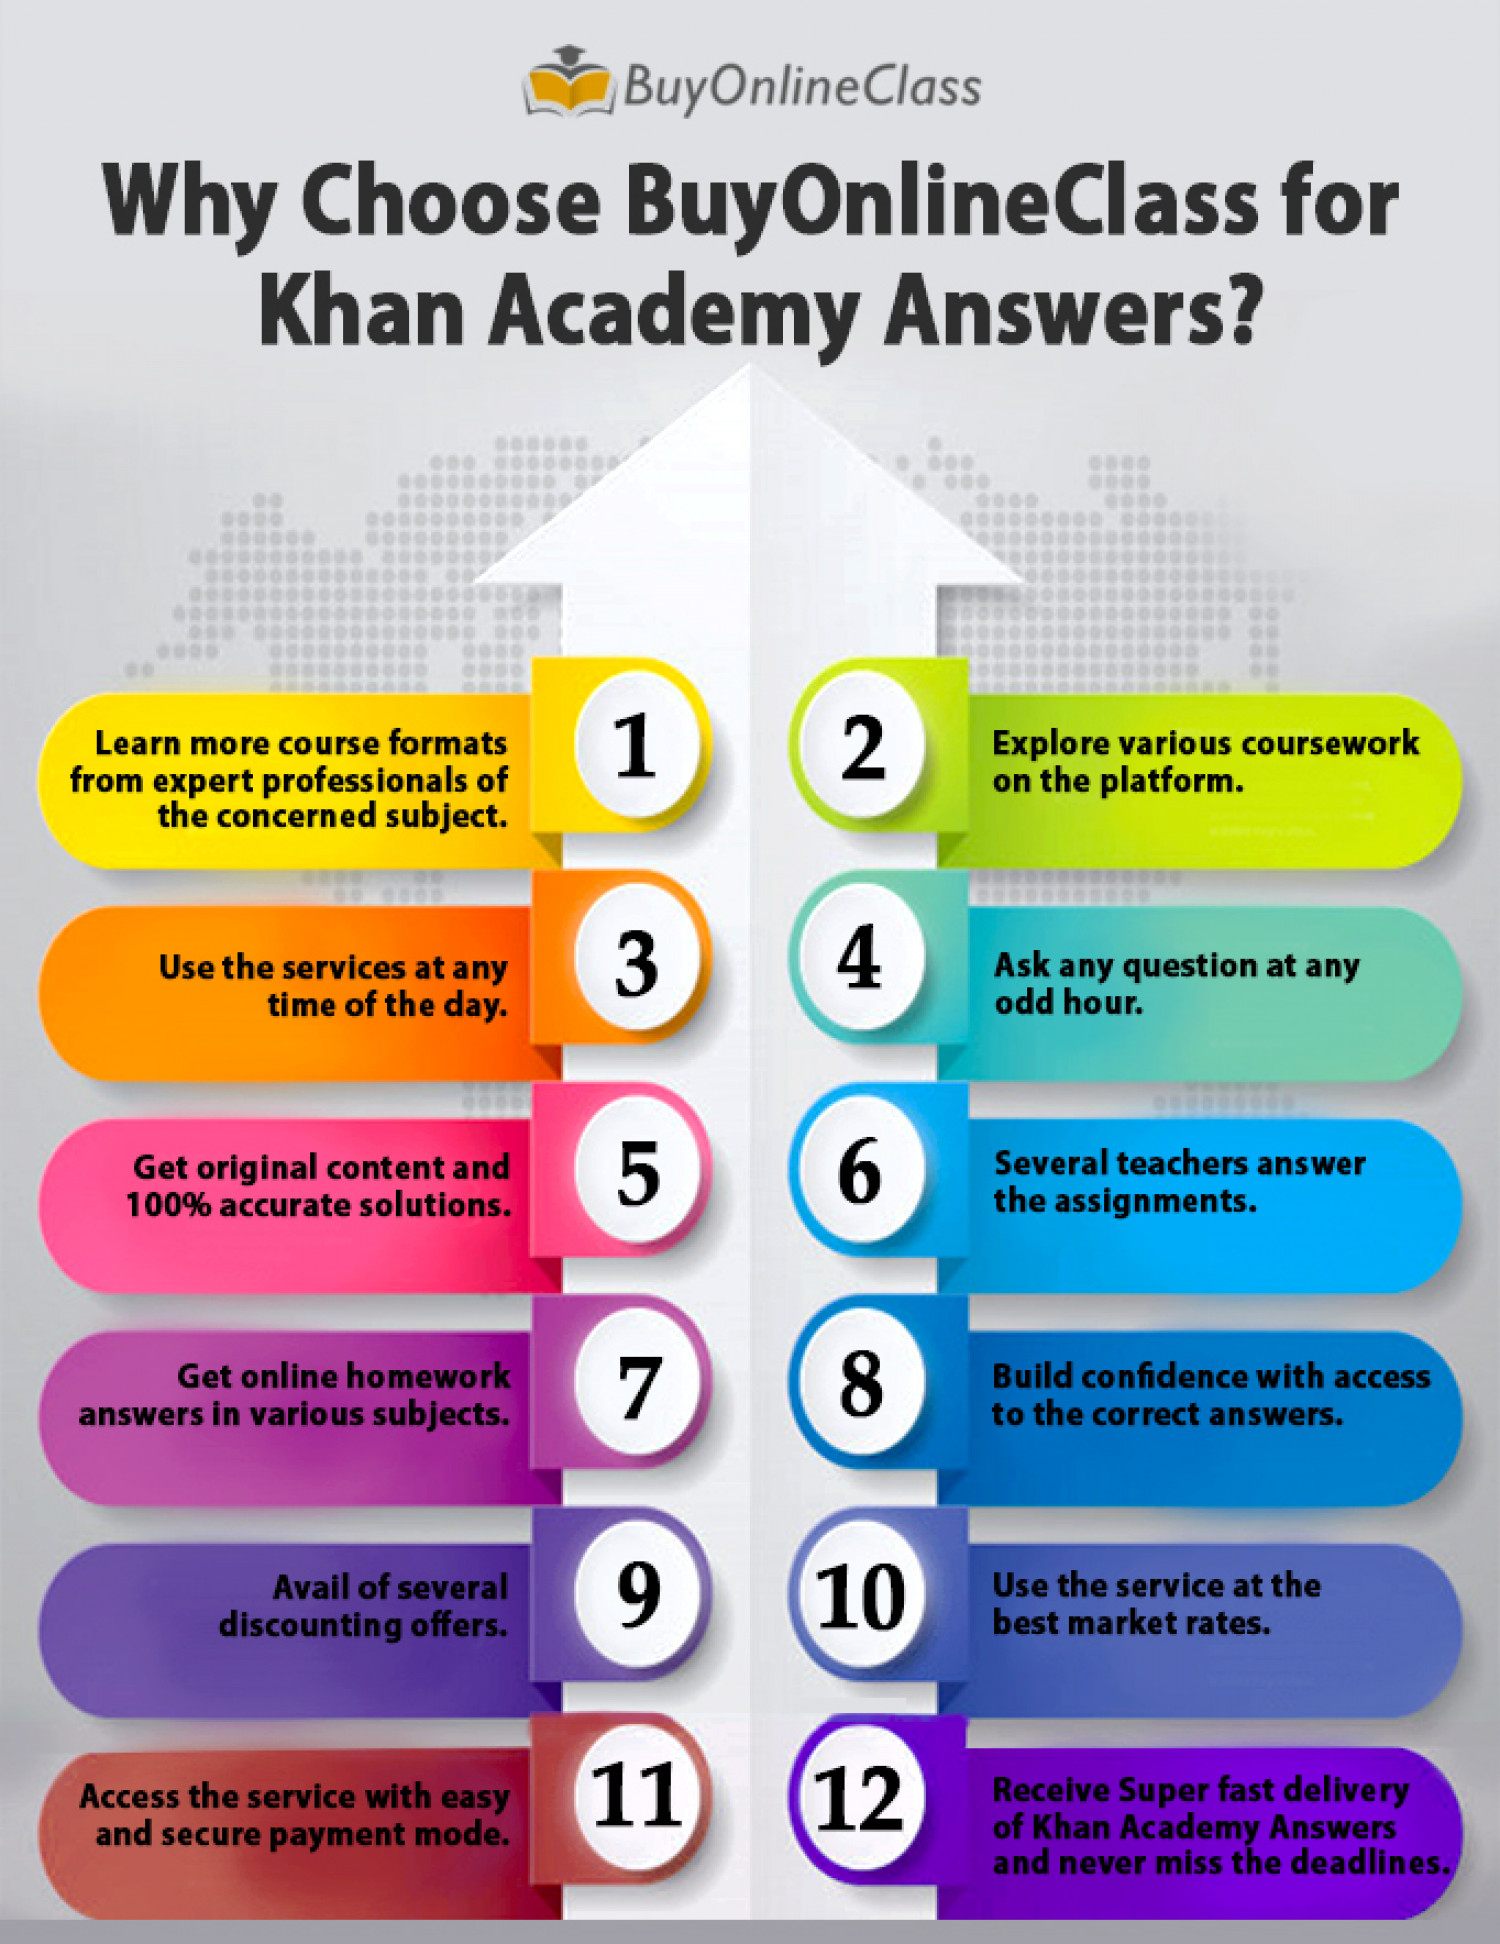 Why Choose BuyOnlineClass for Khan Academy Answers? Infographic